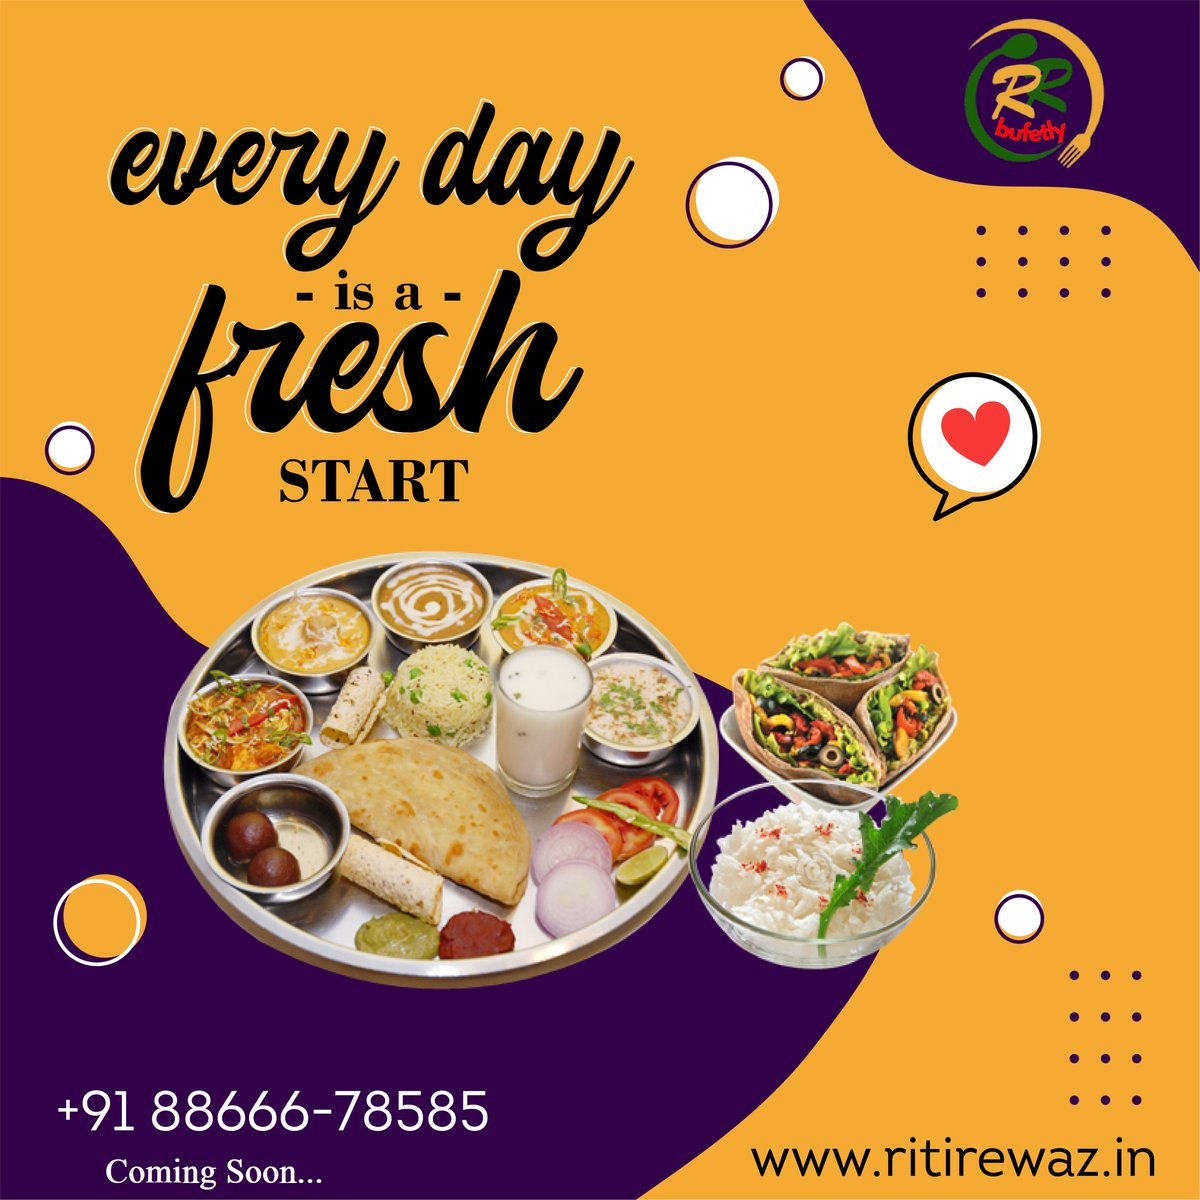 Everyday is a Fresh Start.  #sundayvibes #Twitter #foodies #startup #India #Gujrat